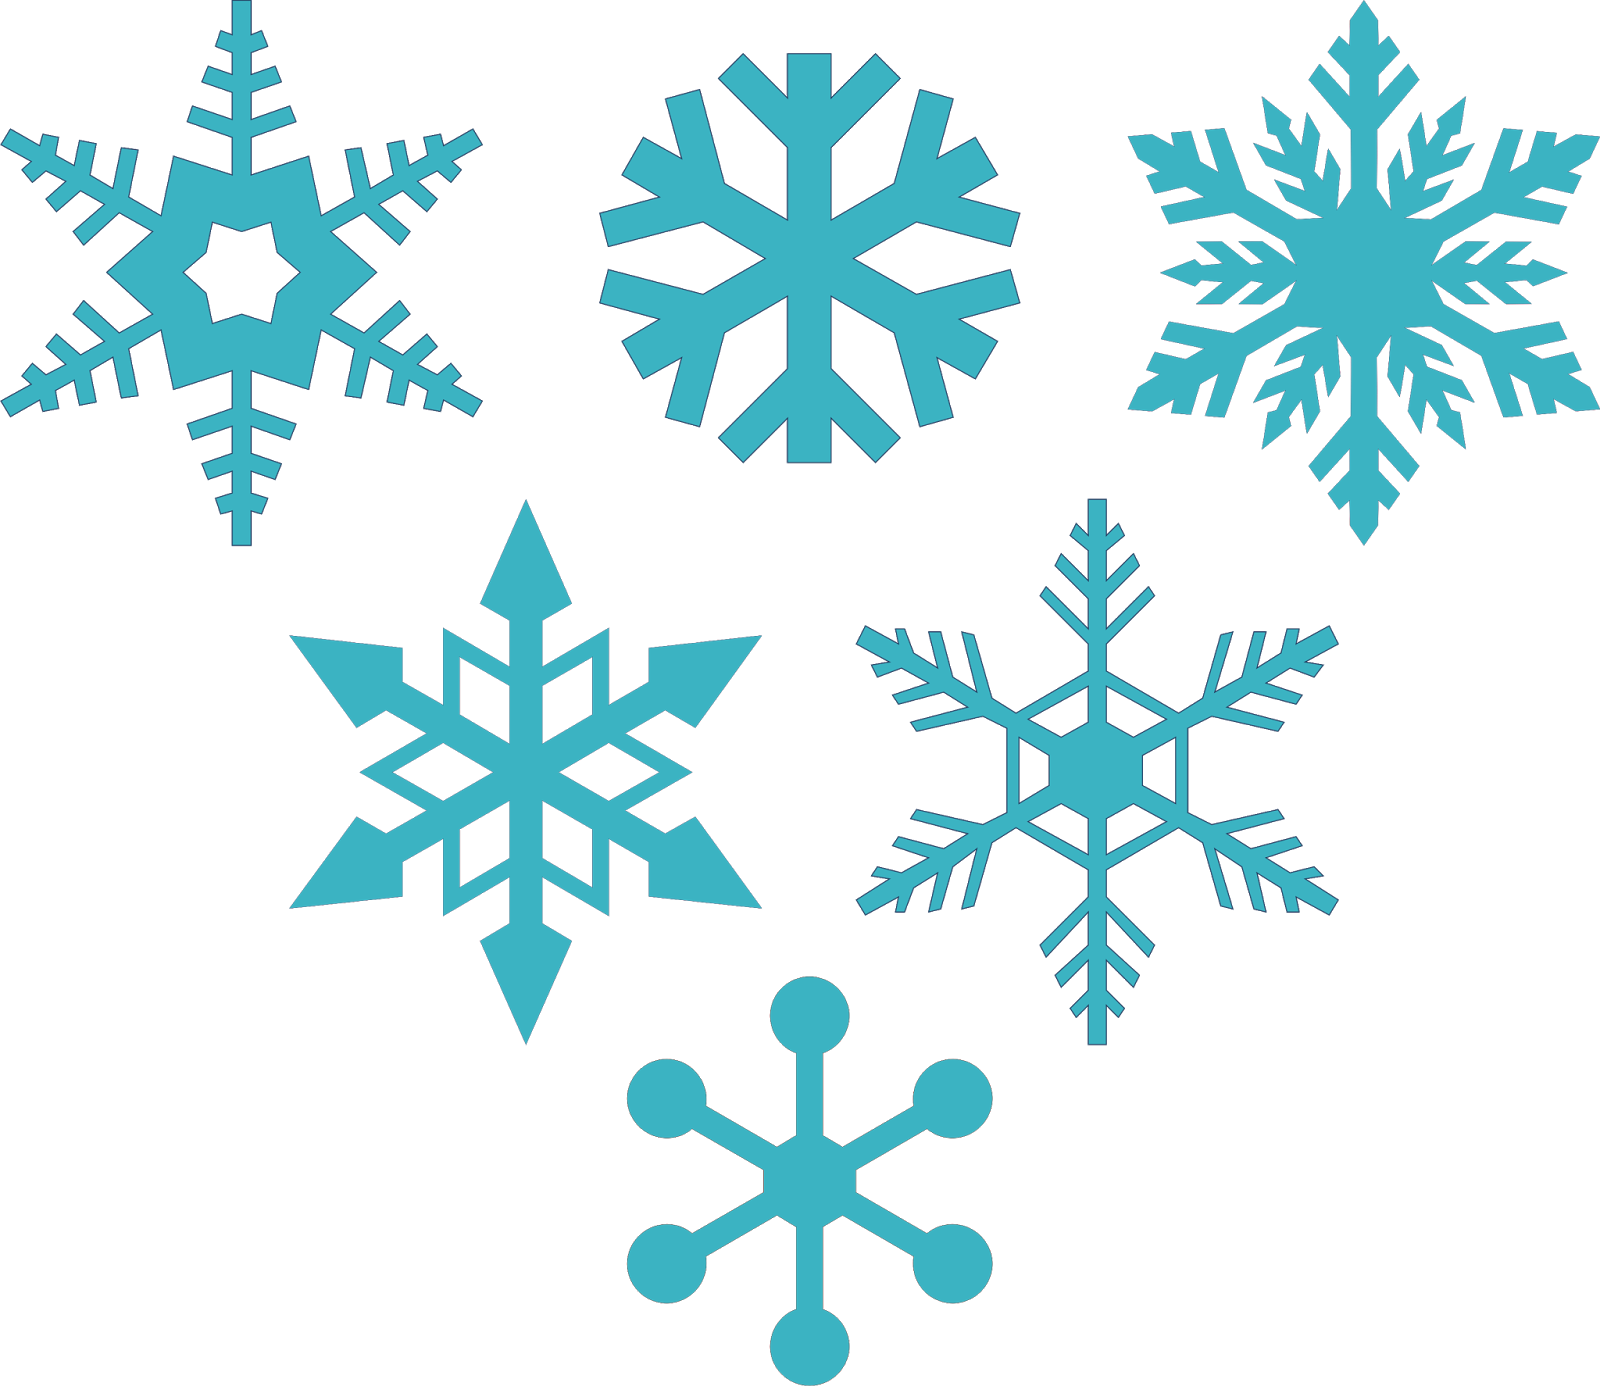 Free snowflake png. Digital art by daniela